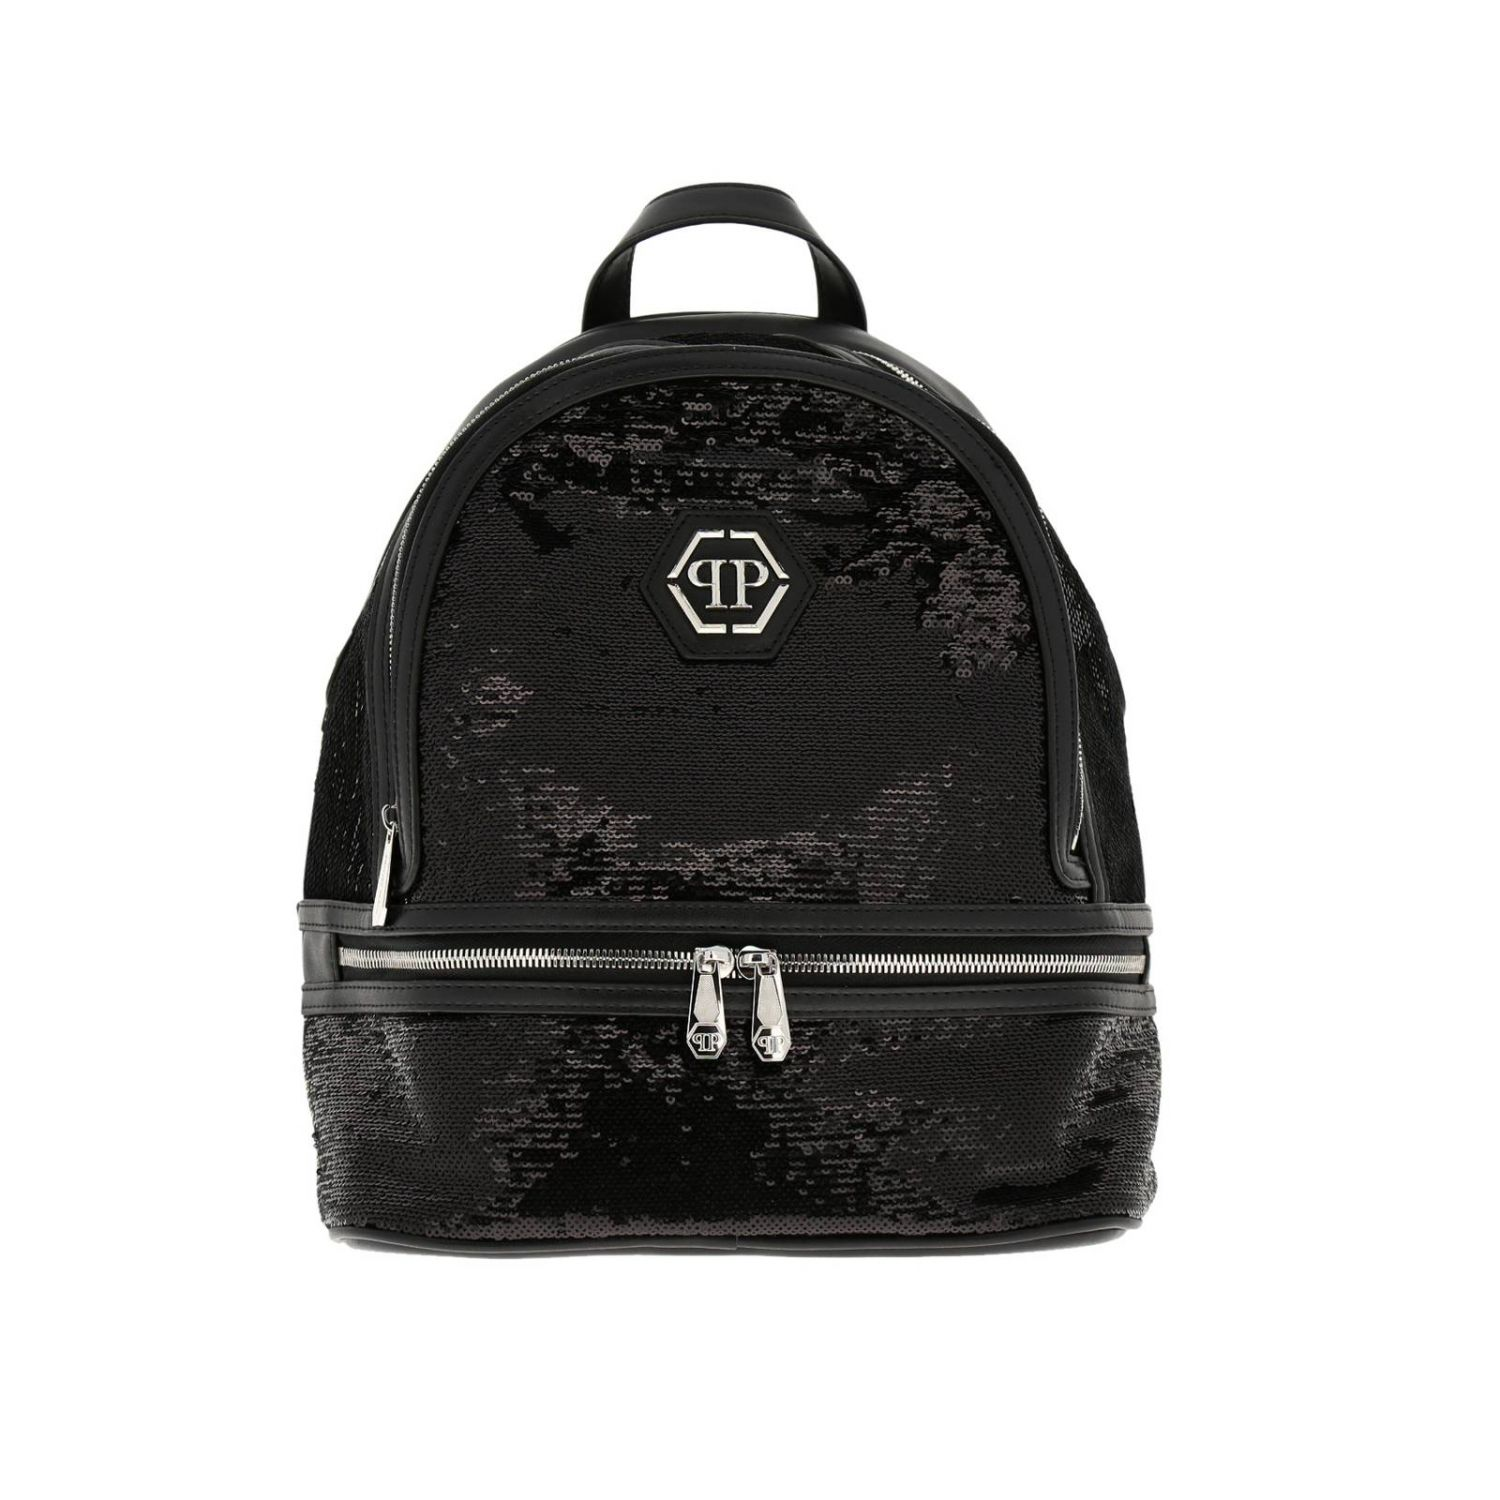 Philipp Plein backpack in leather and sequins with hexagonal monogram and zip black 1